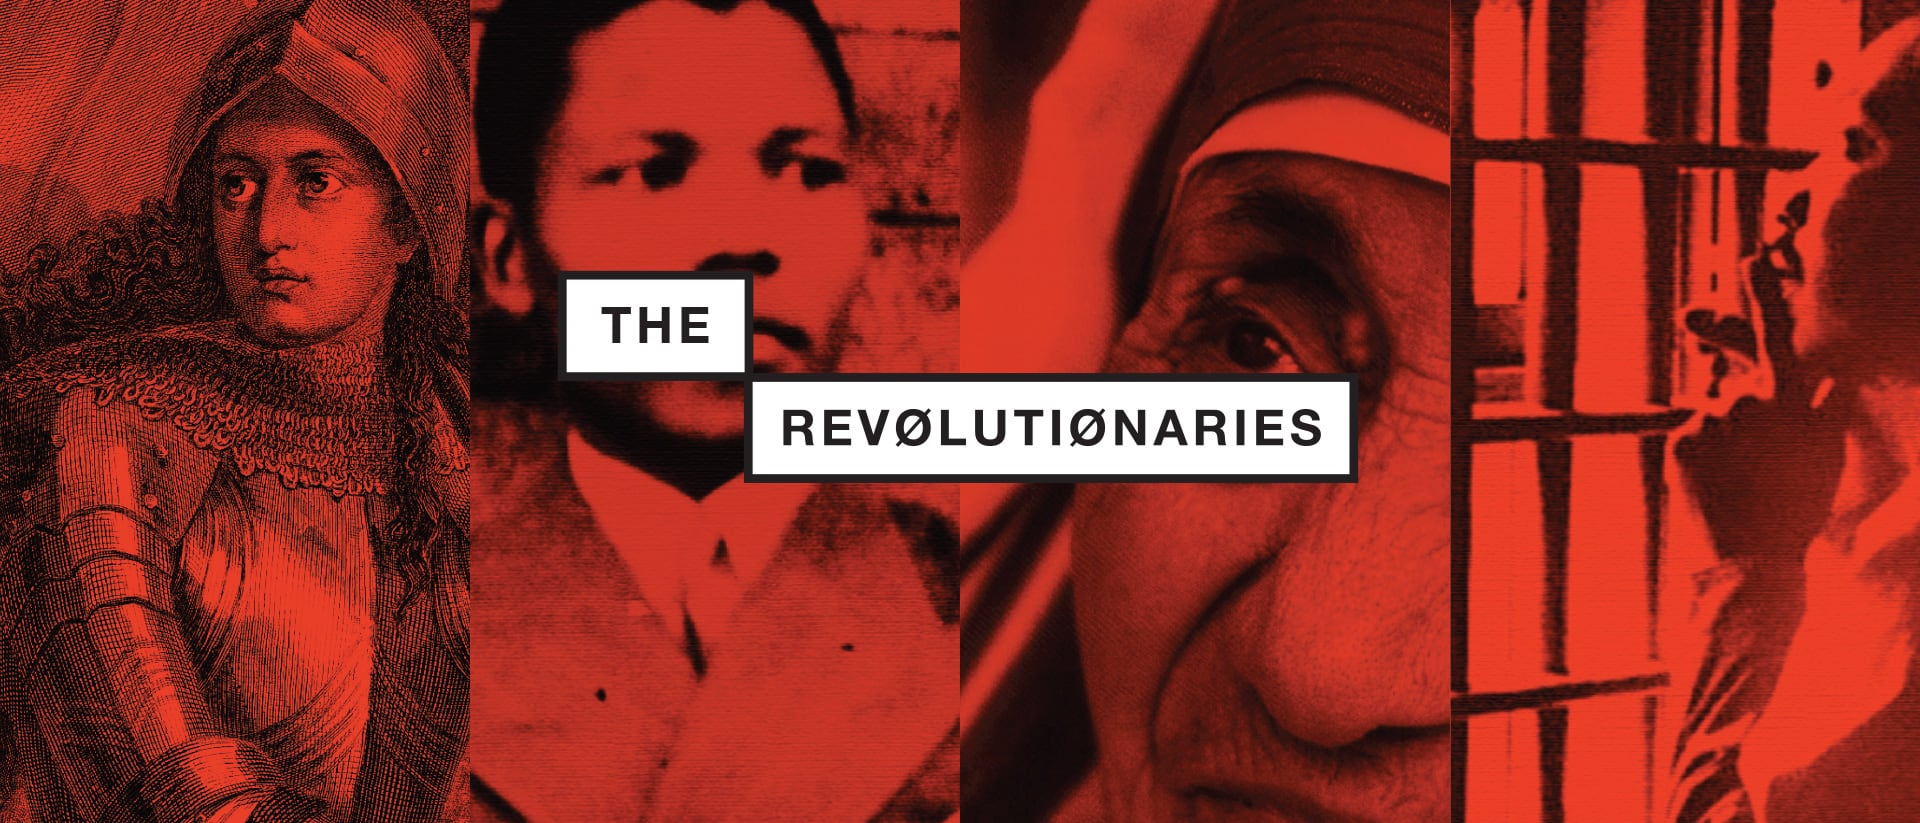 The Revolutionaries